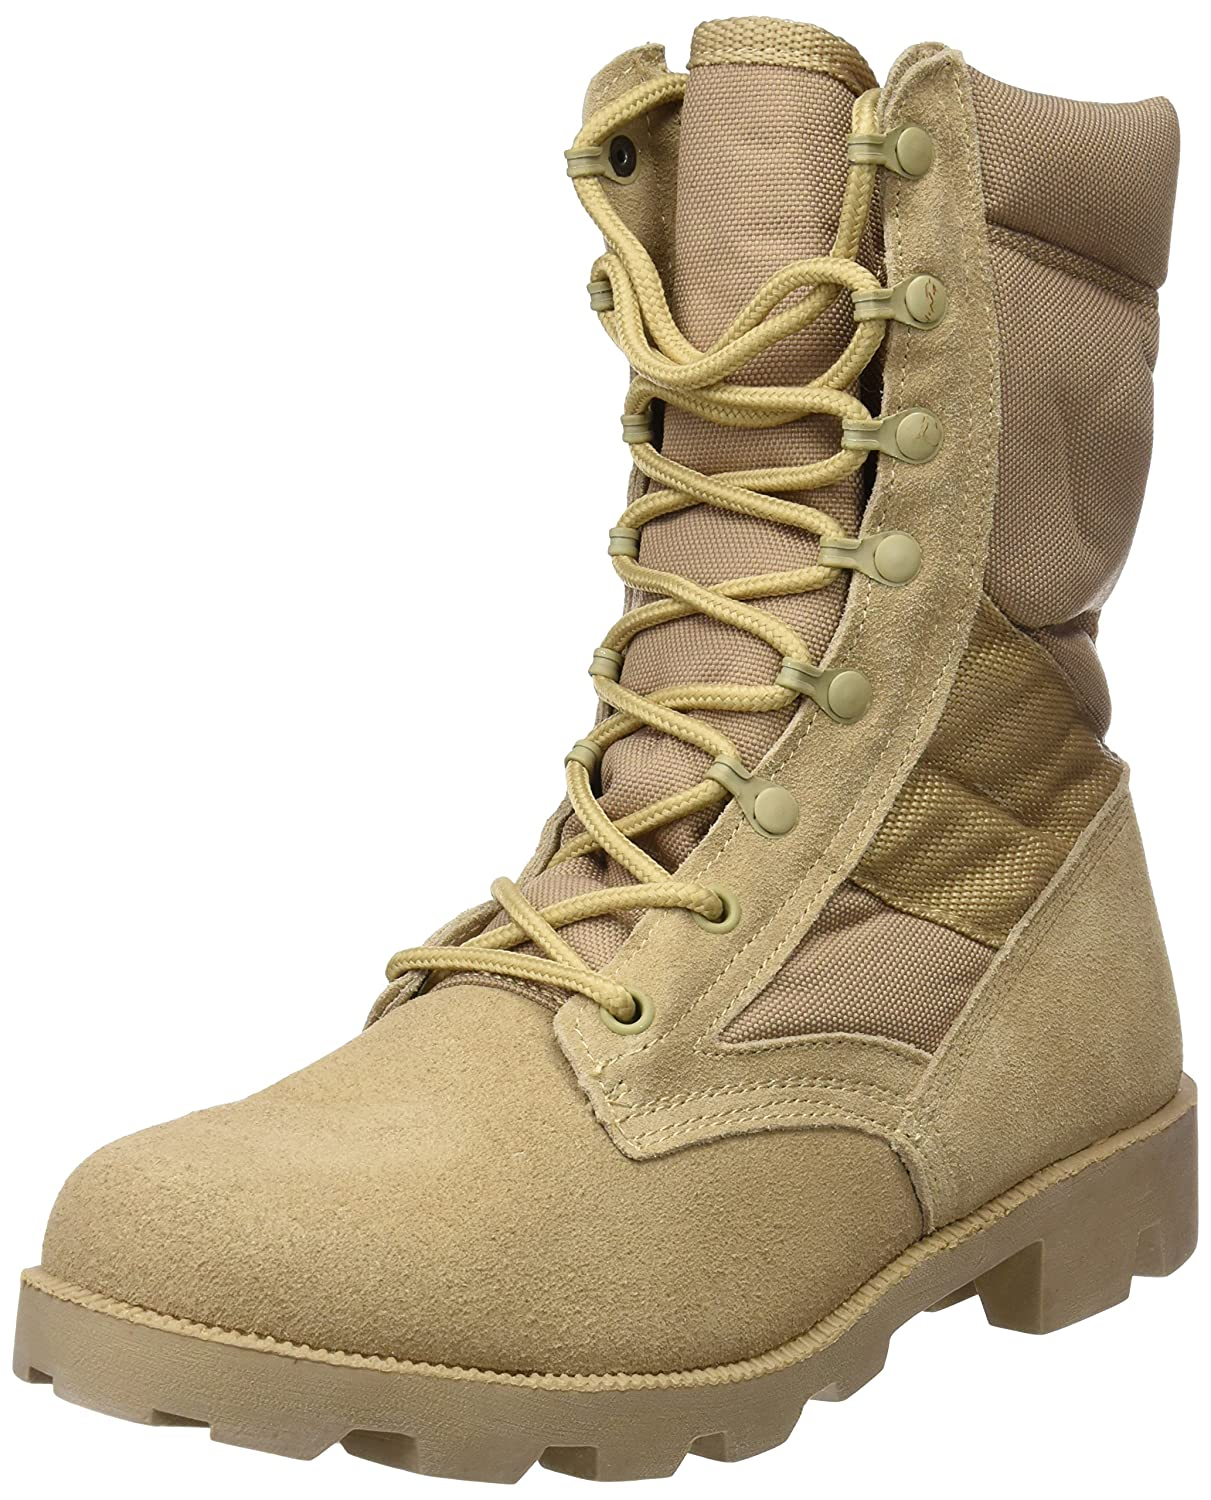 US Army Desert Combat Jungle Patrol Mens Boots Tan Suede Leather Khaki   Amazon.co.uk  DIY   Tools 535d95de2ed